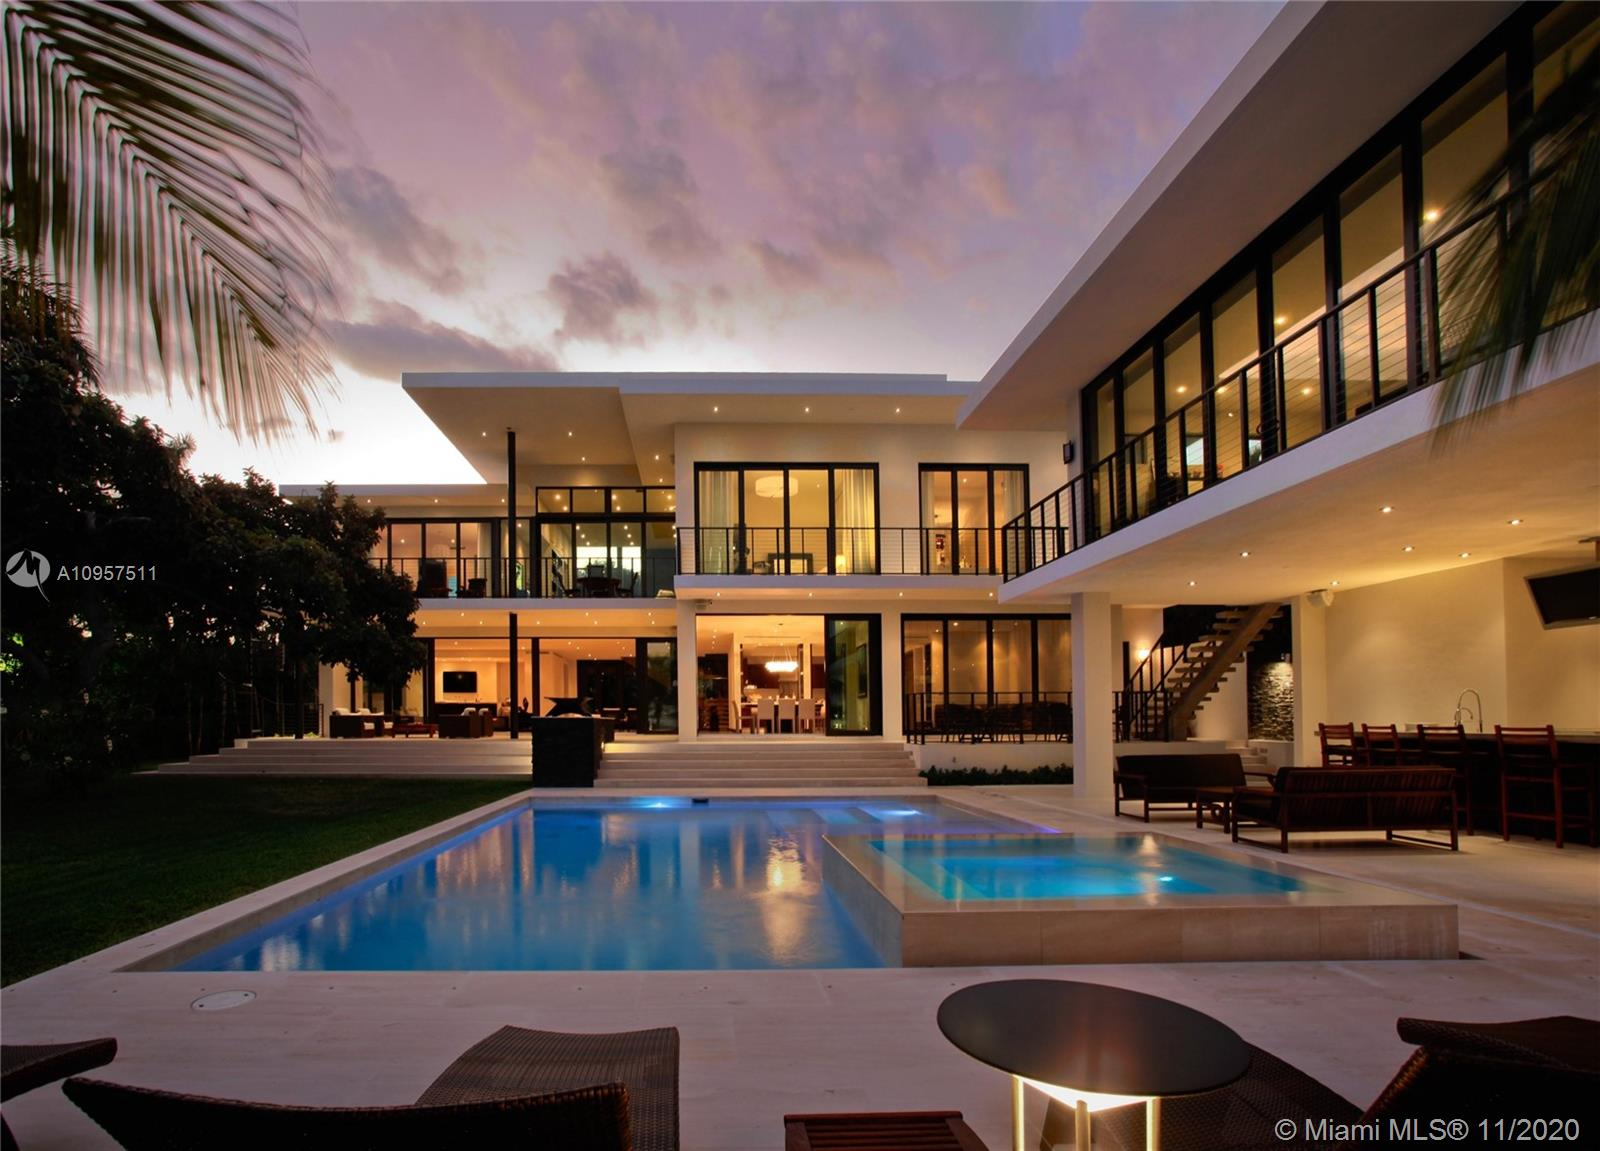 Venetian Island sanctuary offers movie-set glamour on a waterfront stage. The Ralph Choeff-designed Tropical Modern resort-style residence commands dramatic bay & South Beach vistas along 120 waterfront feet. Featured in Florida Design Magazine, the stunning 9,000sf house on a half-acre lot boasts poured concrete construction, impact glass walls, natural light, flowing limestone floors, balconies & terraces. Grand Master w/ His & Hers baths & walk-ins. Gourmet kitchen, upstairs family & home office. Southeast breezes make for idyllic indoor/outdoor living w/pool, spa, cabana/guest house, summer kitchen/lounge, generator, dockage for 3 boats w/ 2 lifts. No bridges to bay. Waterside luxury, walking distance to Lincoln Road, bike to Ocean Drive, 10-minute drive to Downtown & 15 to Airport.